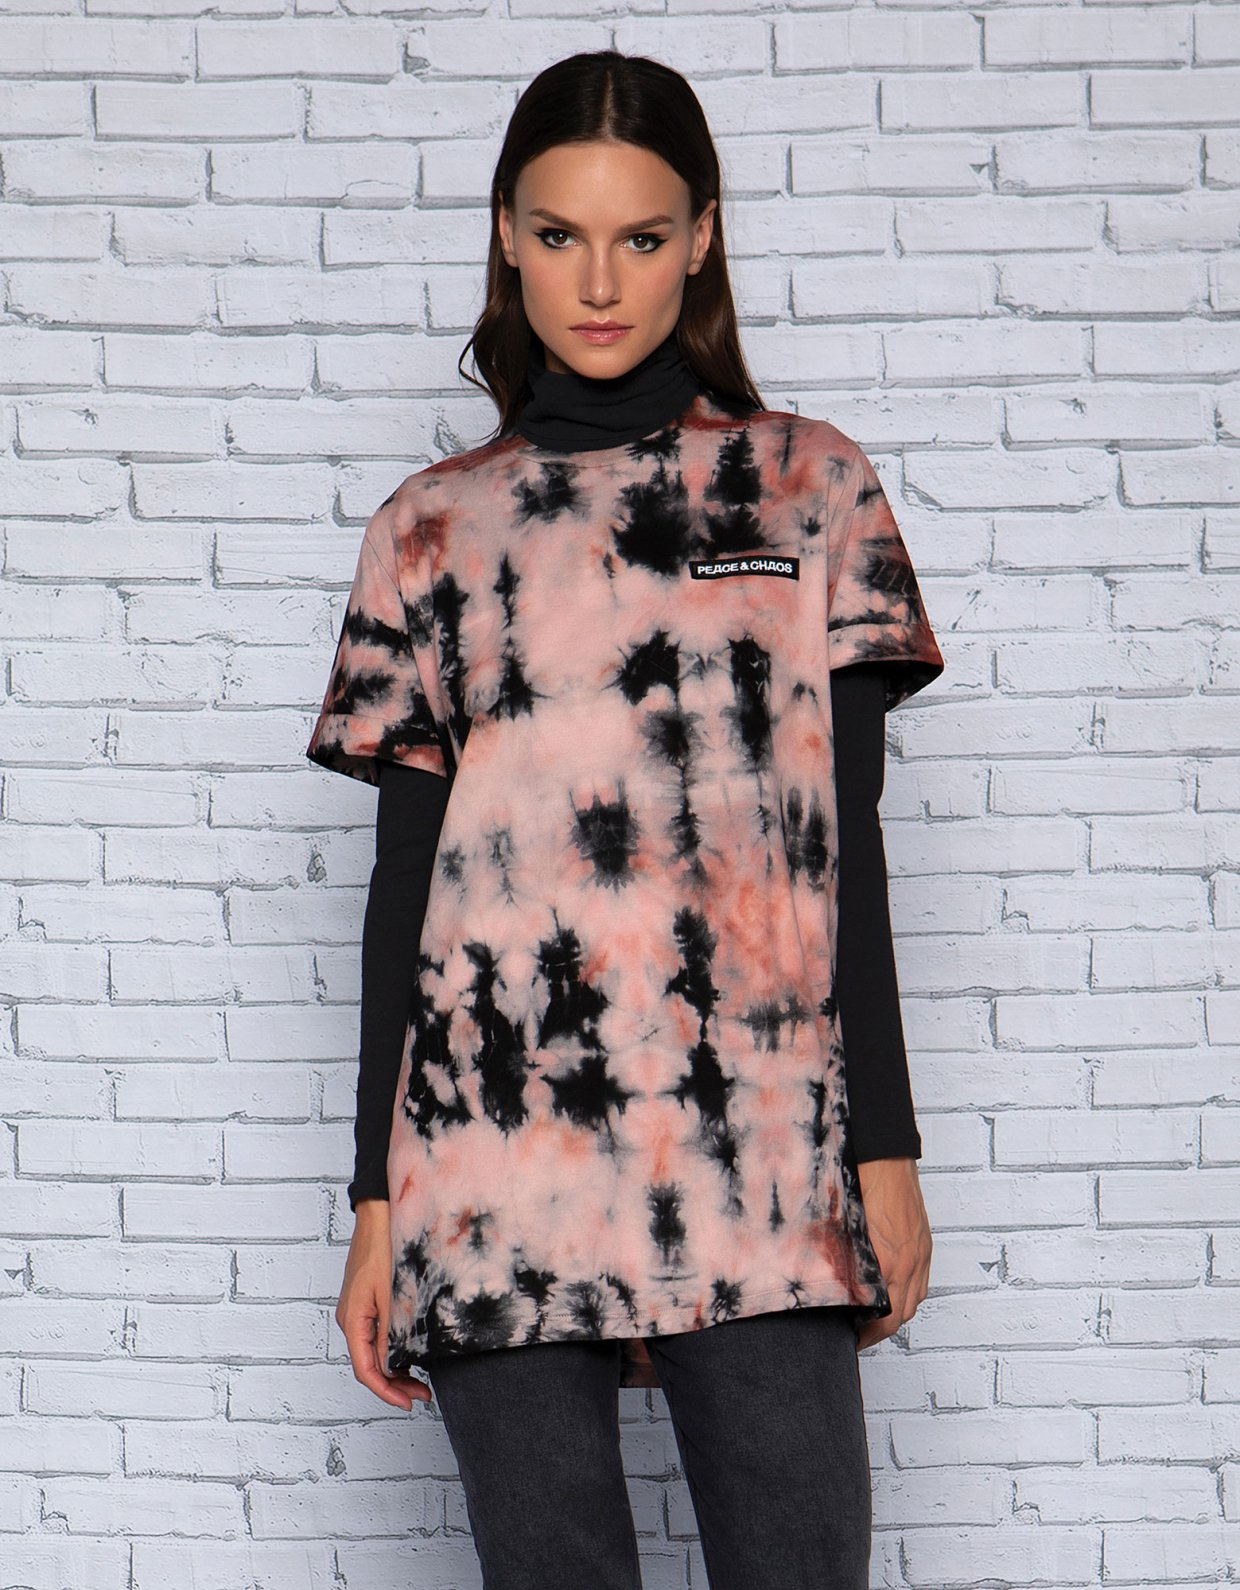 Peace & Chaos Earthly tie dye t-shirt